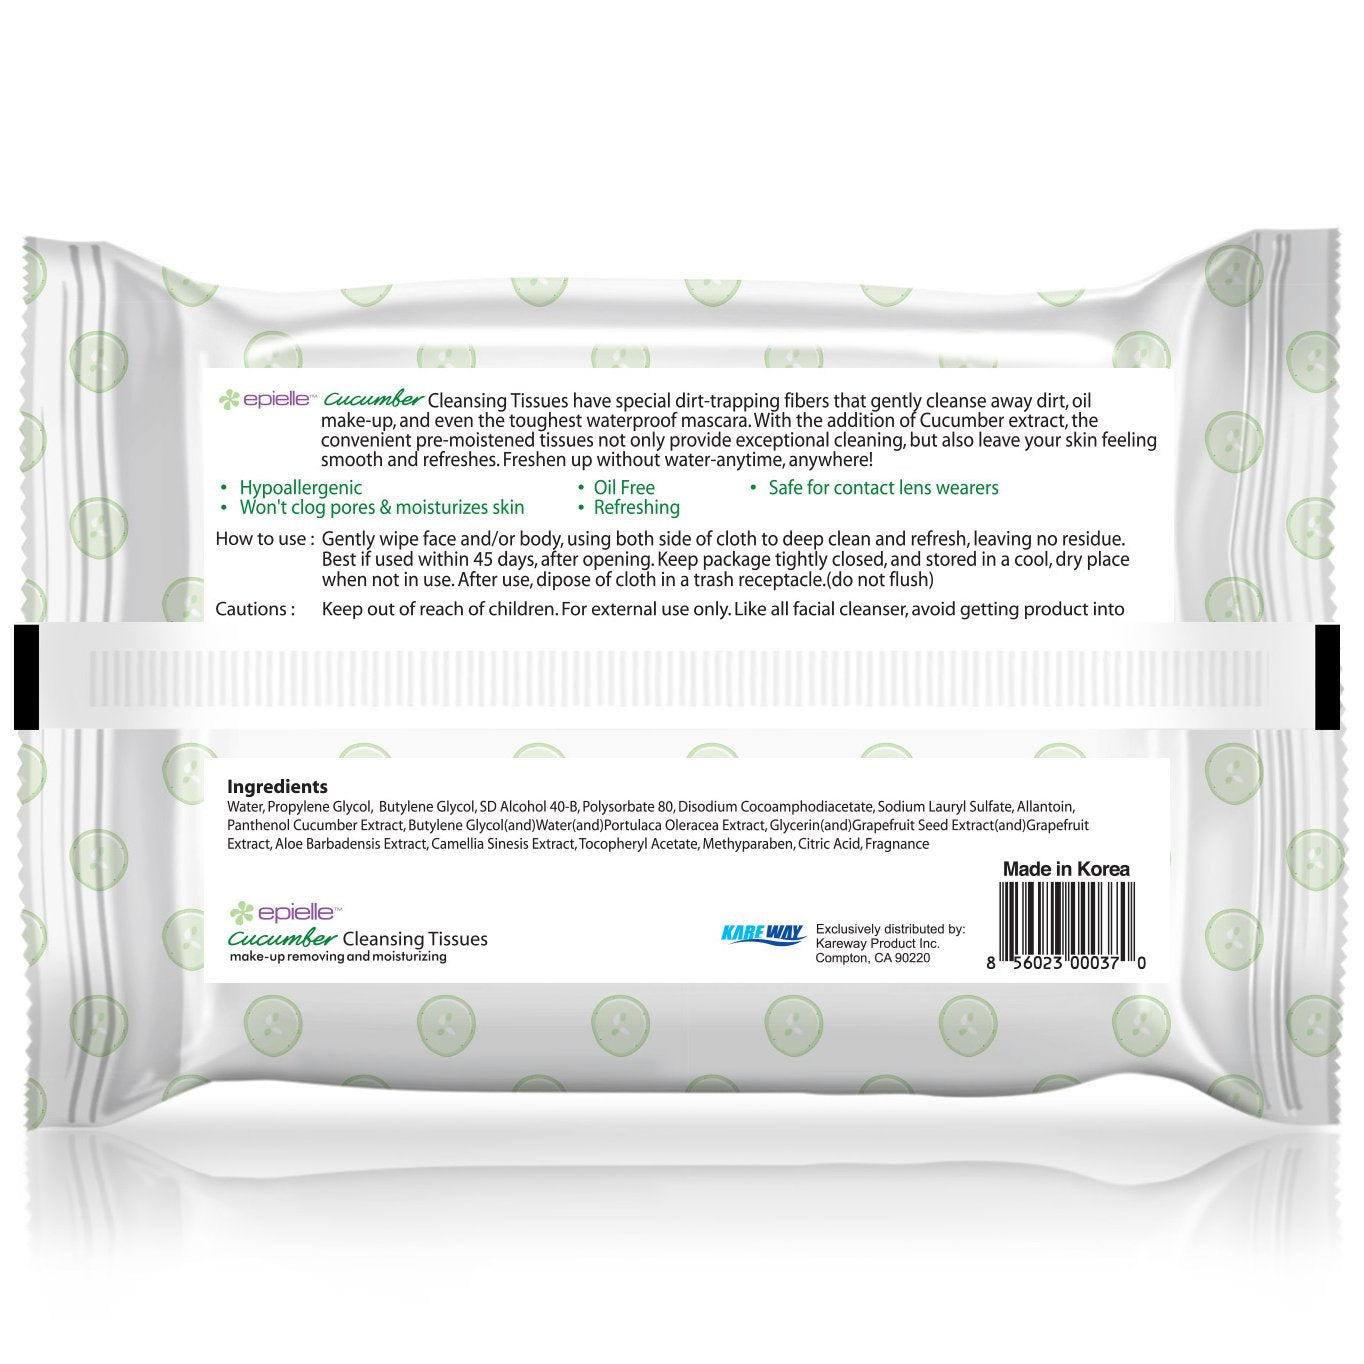 epielle Cucumber Facial Cleansing Tissues, 30ct